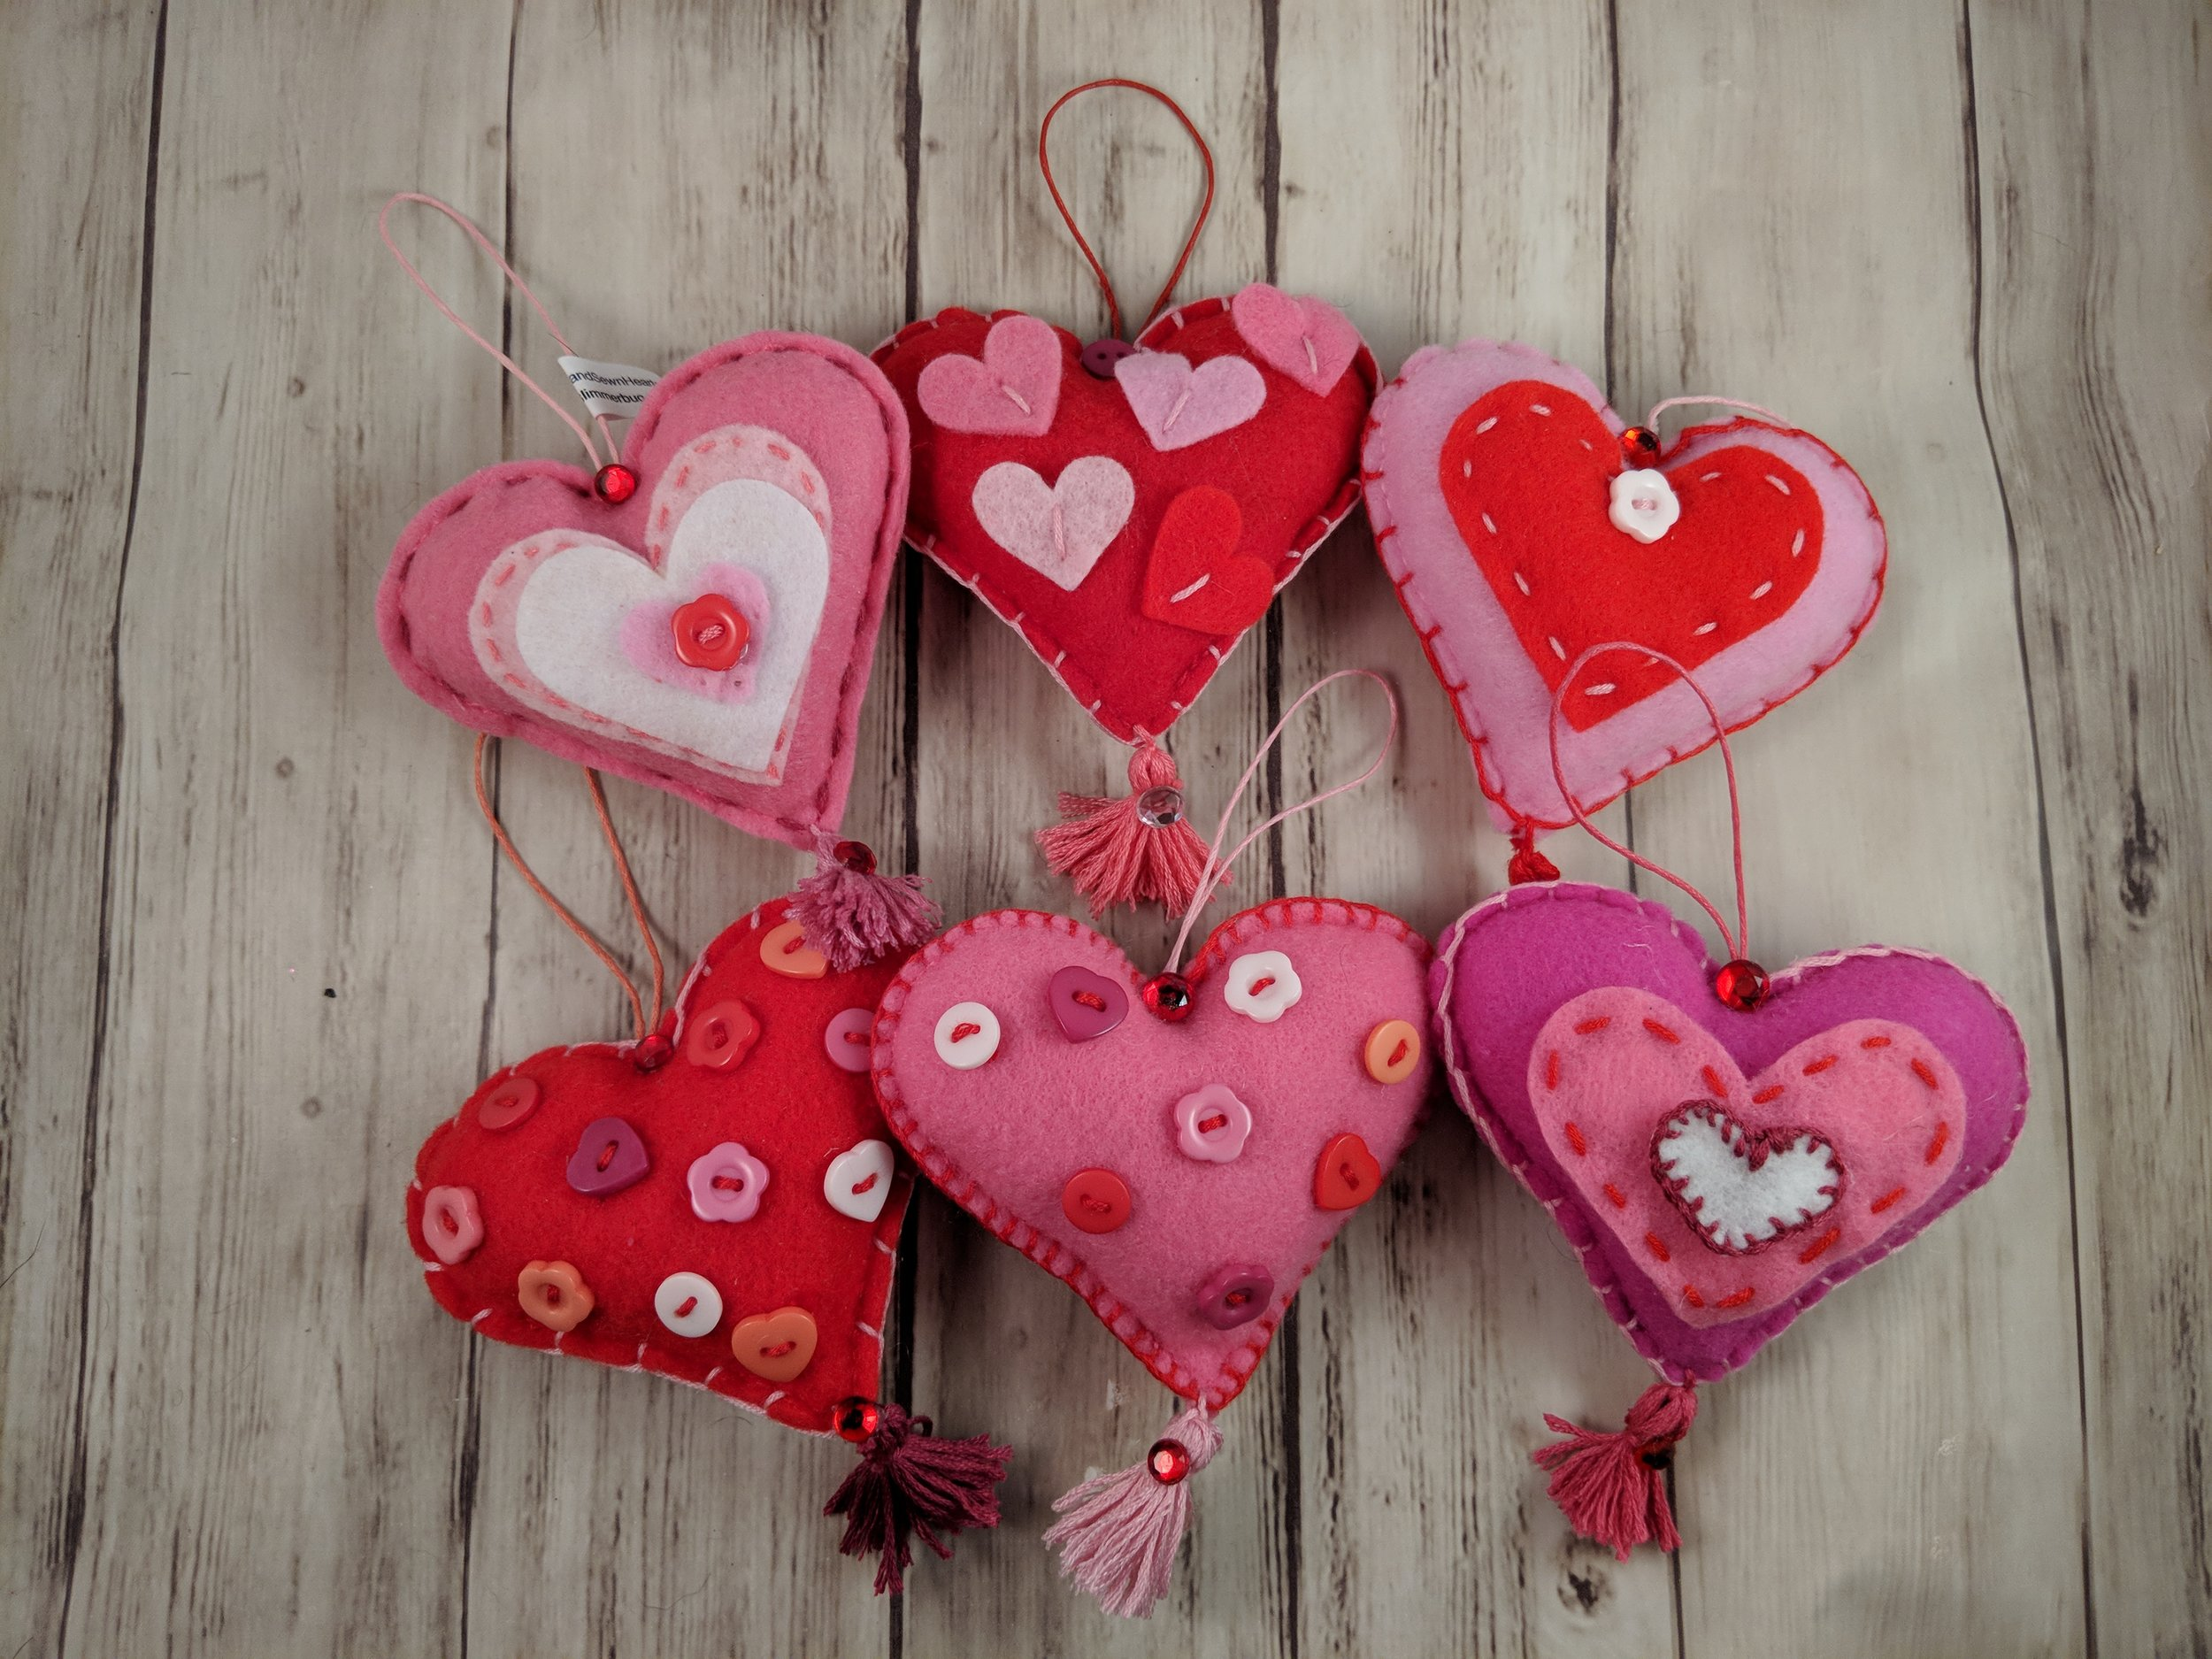 Hand sewn felt heart ornaments decorated with buttons and stitching.